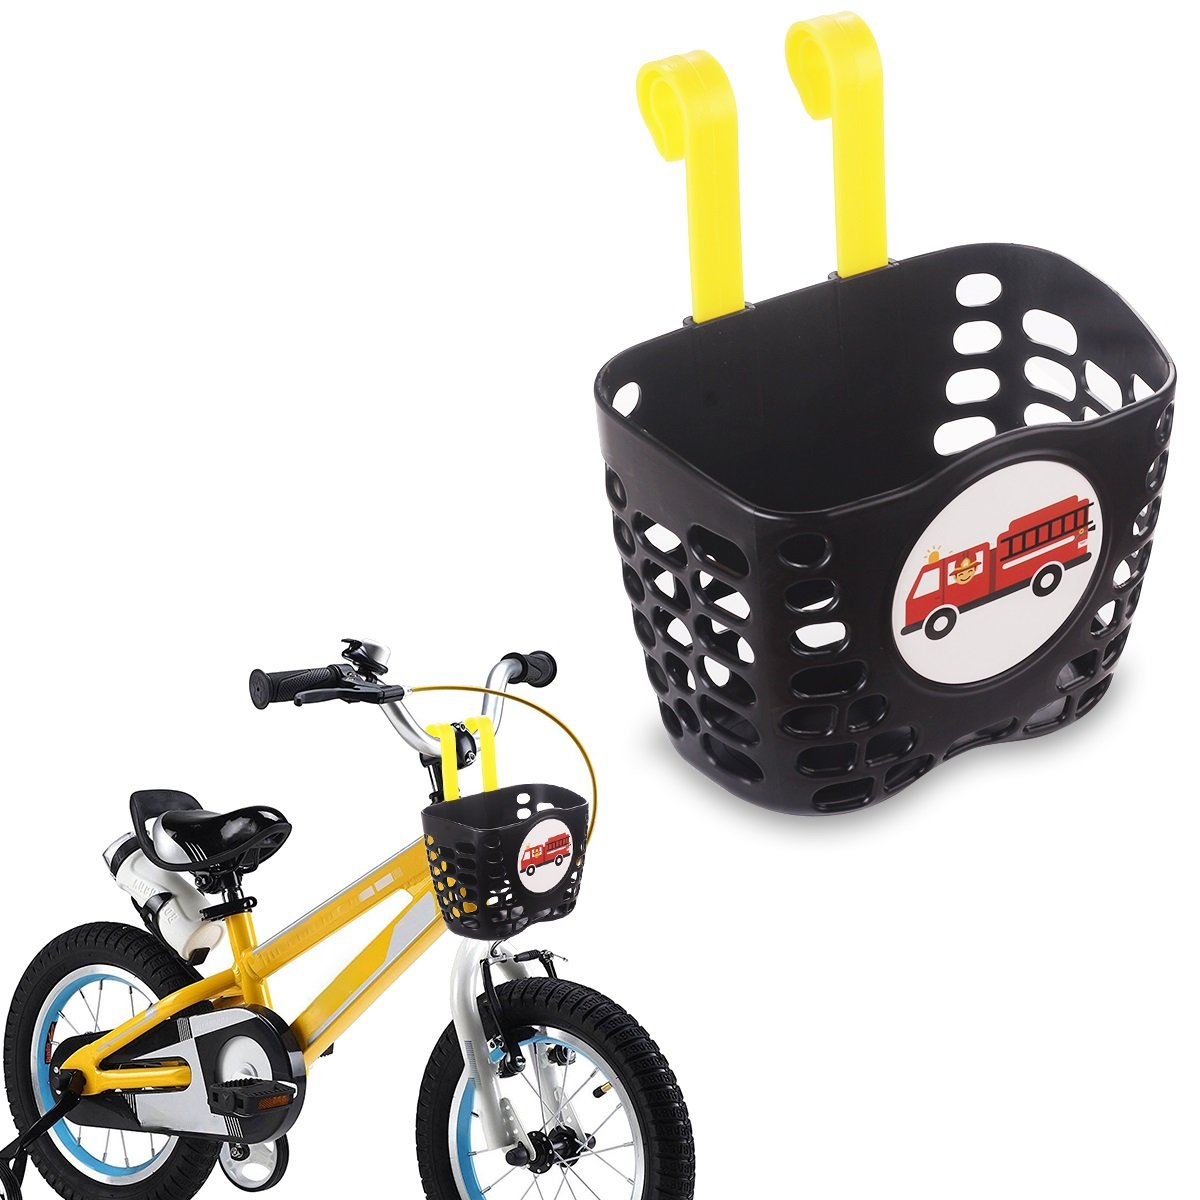 Mini-Factory Kid's Bike Basket, Cute Fire Truck Pattern Bicycle Handlebar Basket for Boy - Fire Truck